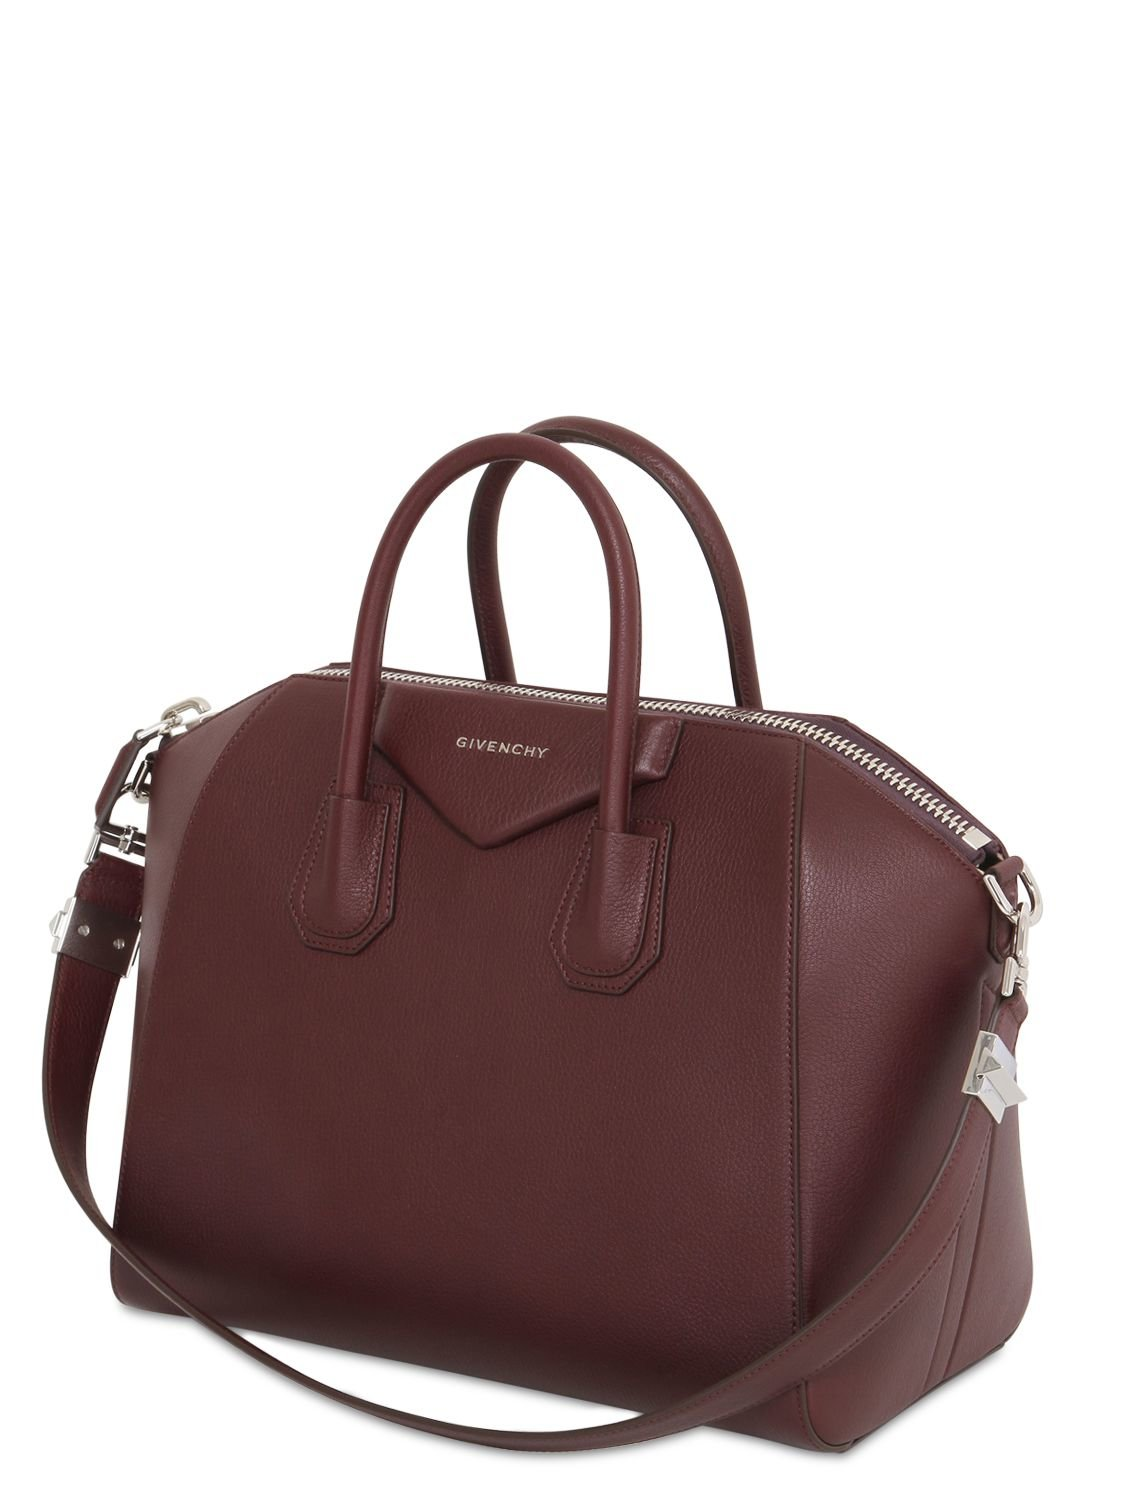 Givenchy Borsa in a Lyst media in grana antigona marrone pelle wqwaSYH